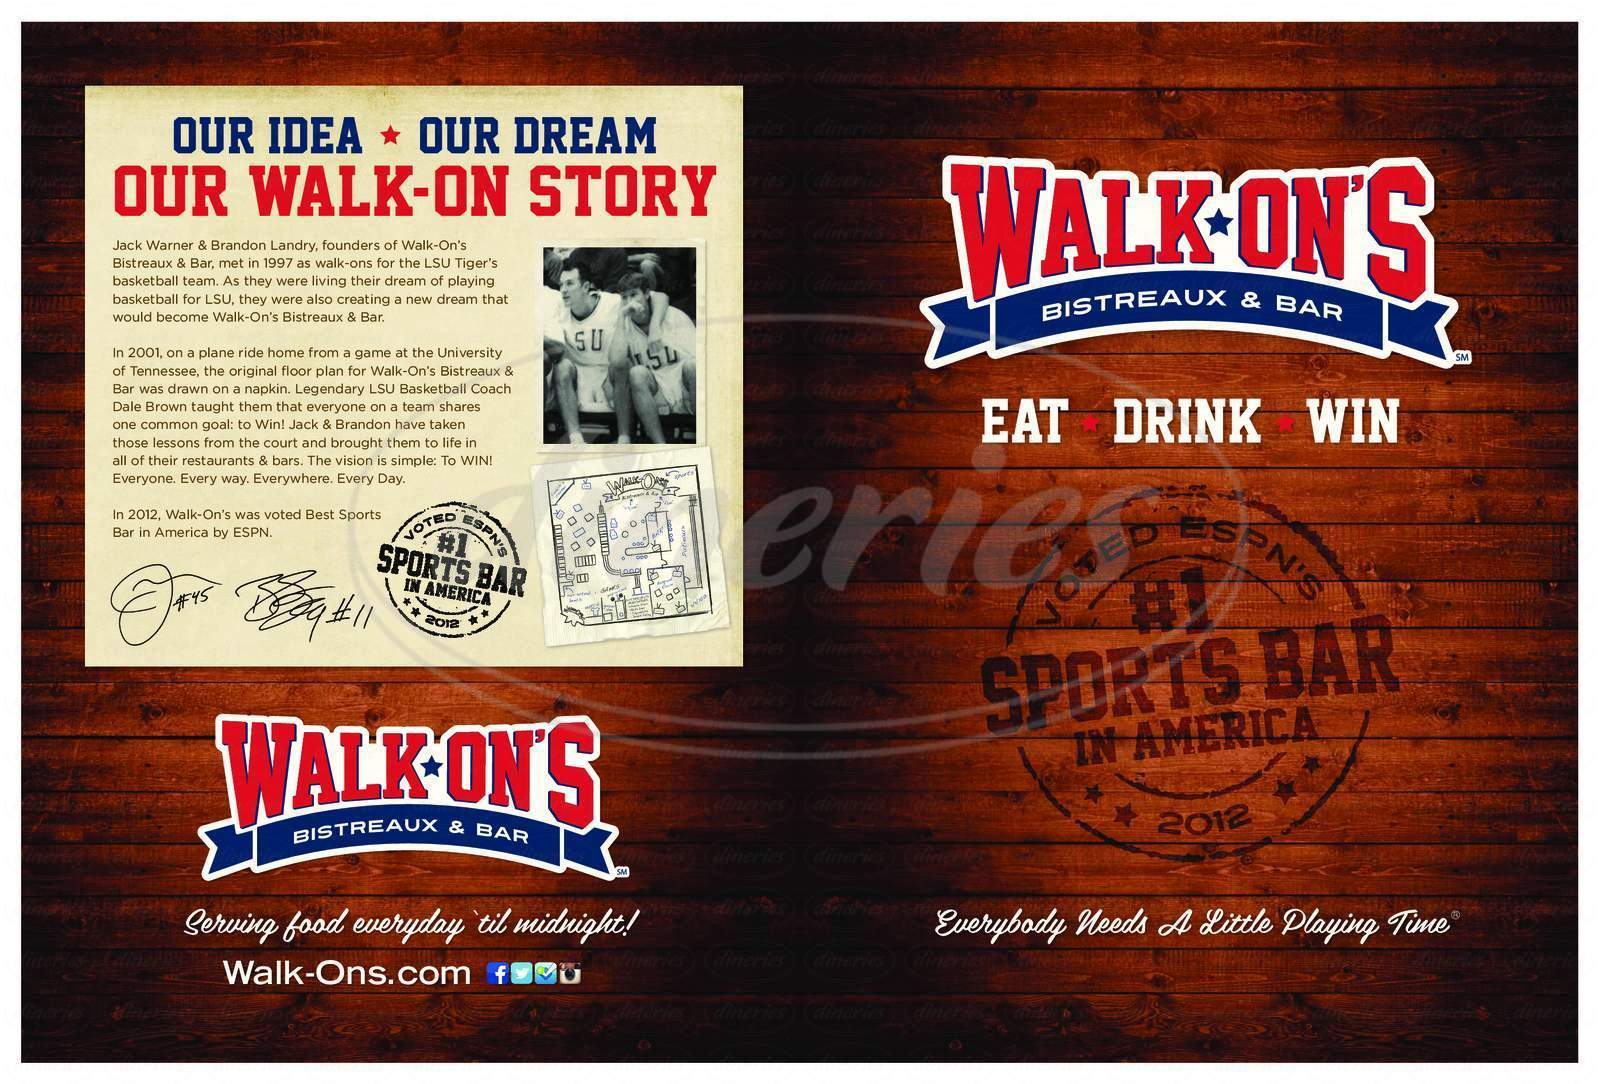 menu for Walk-Ons